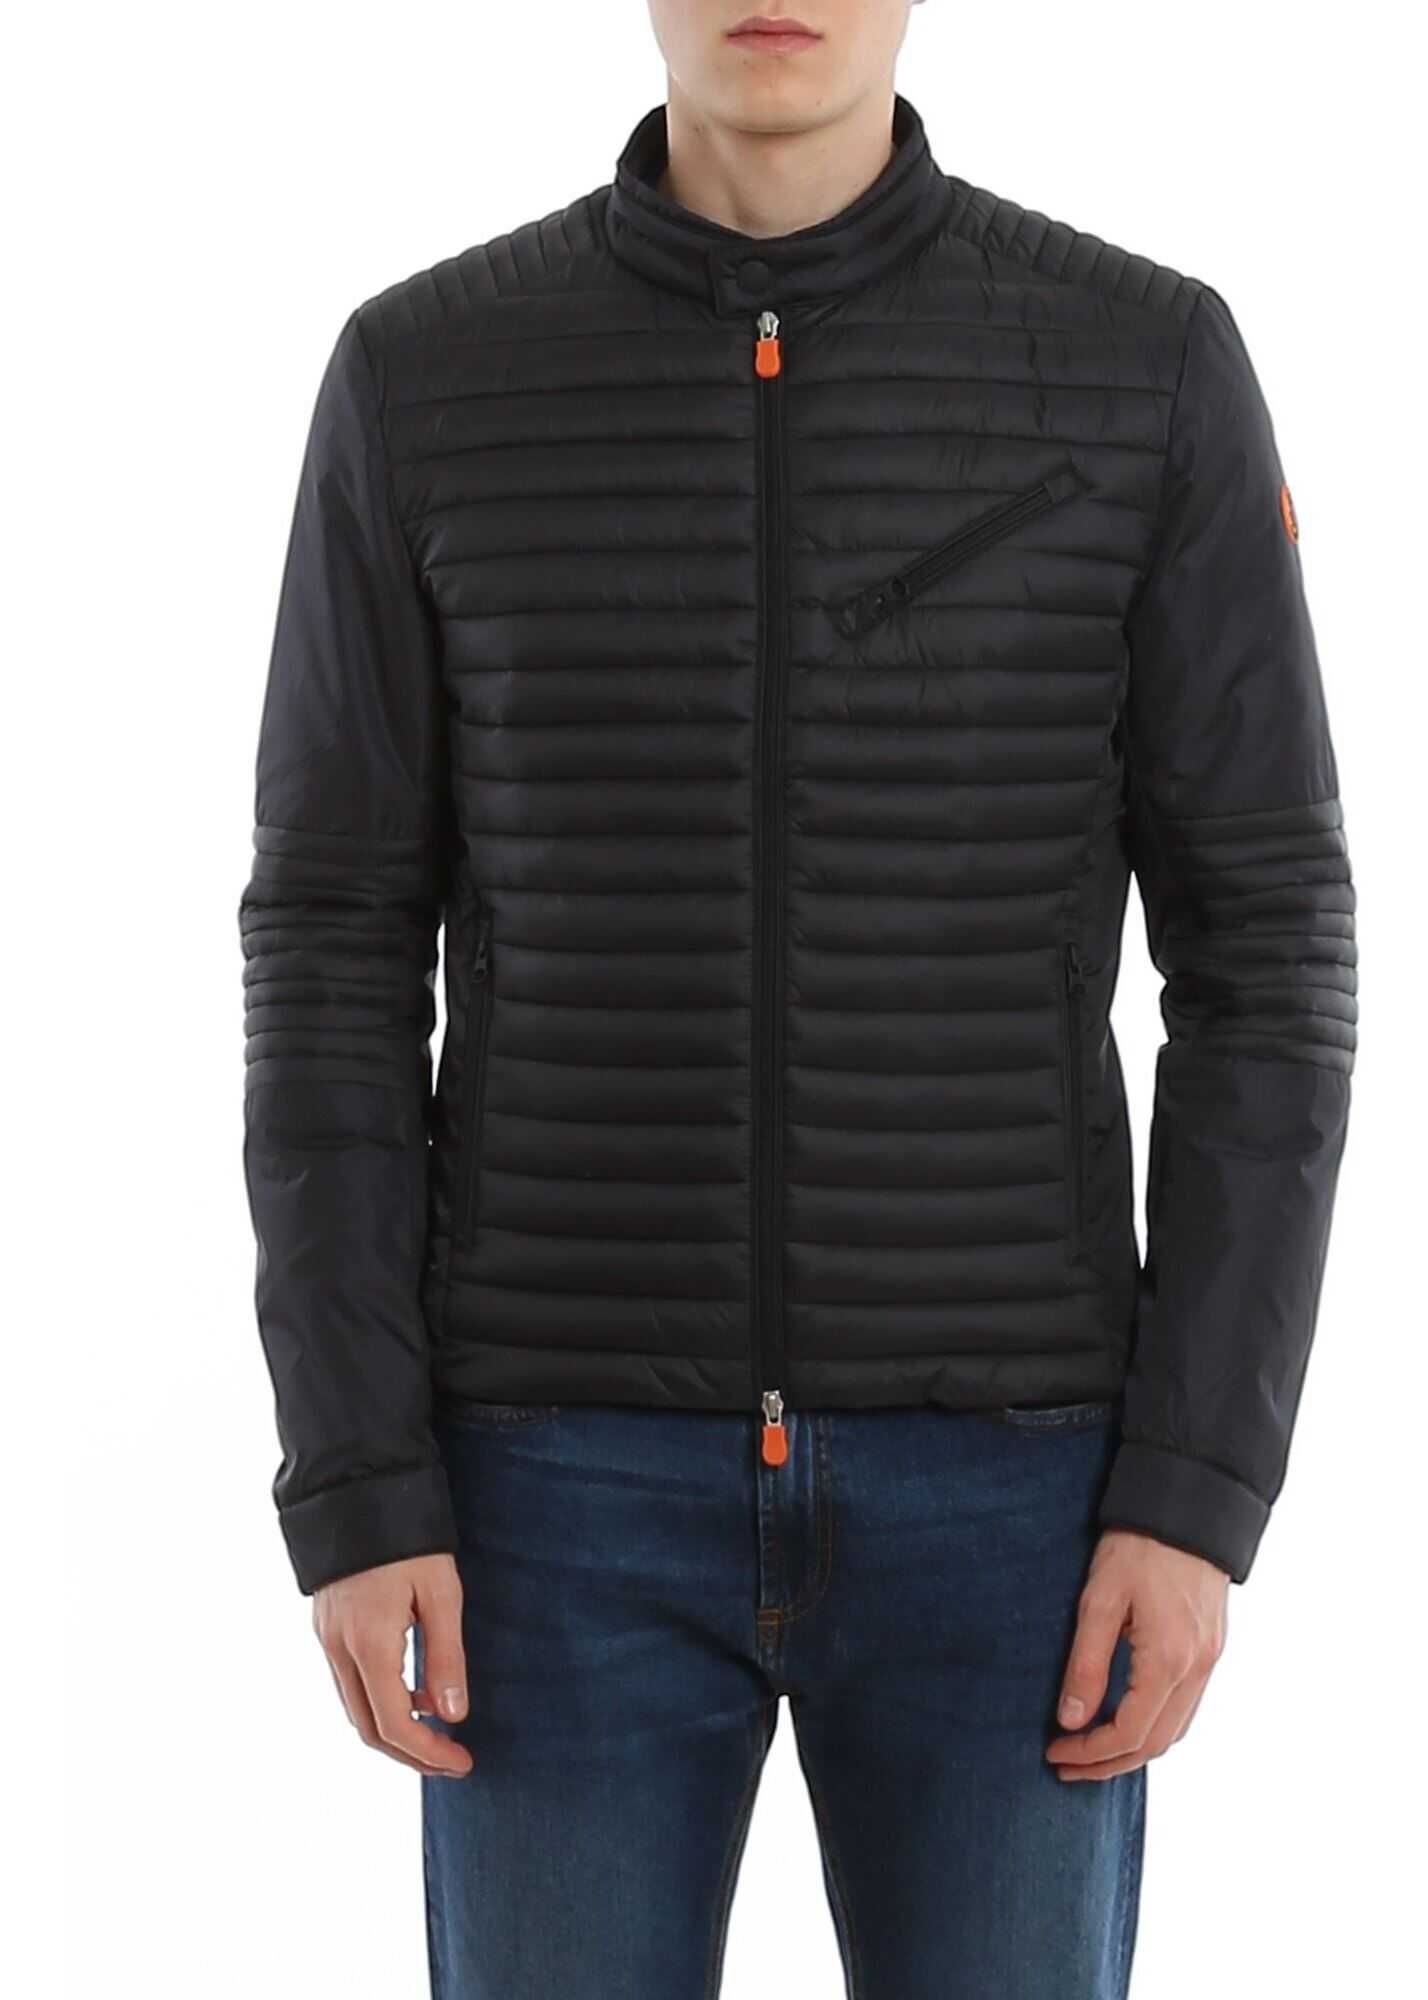 Save the Duck Ultralight Puffer Jacket Black